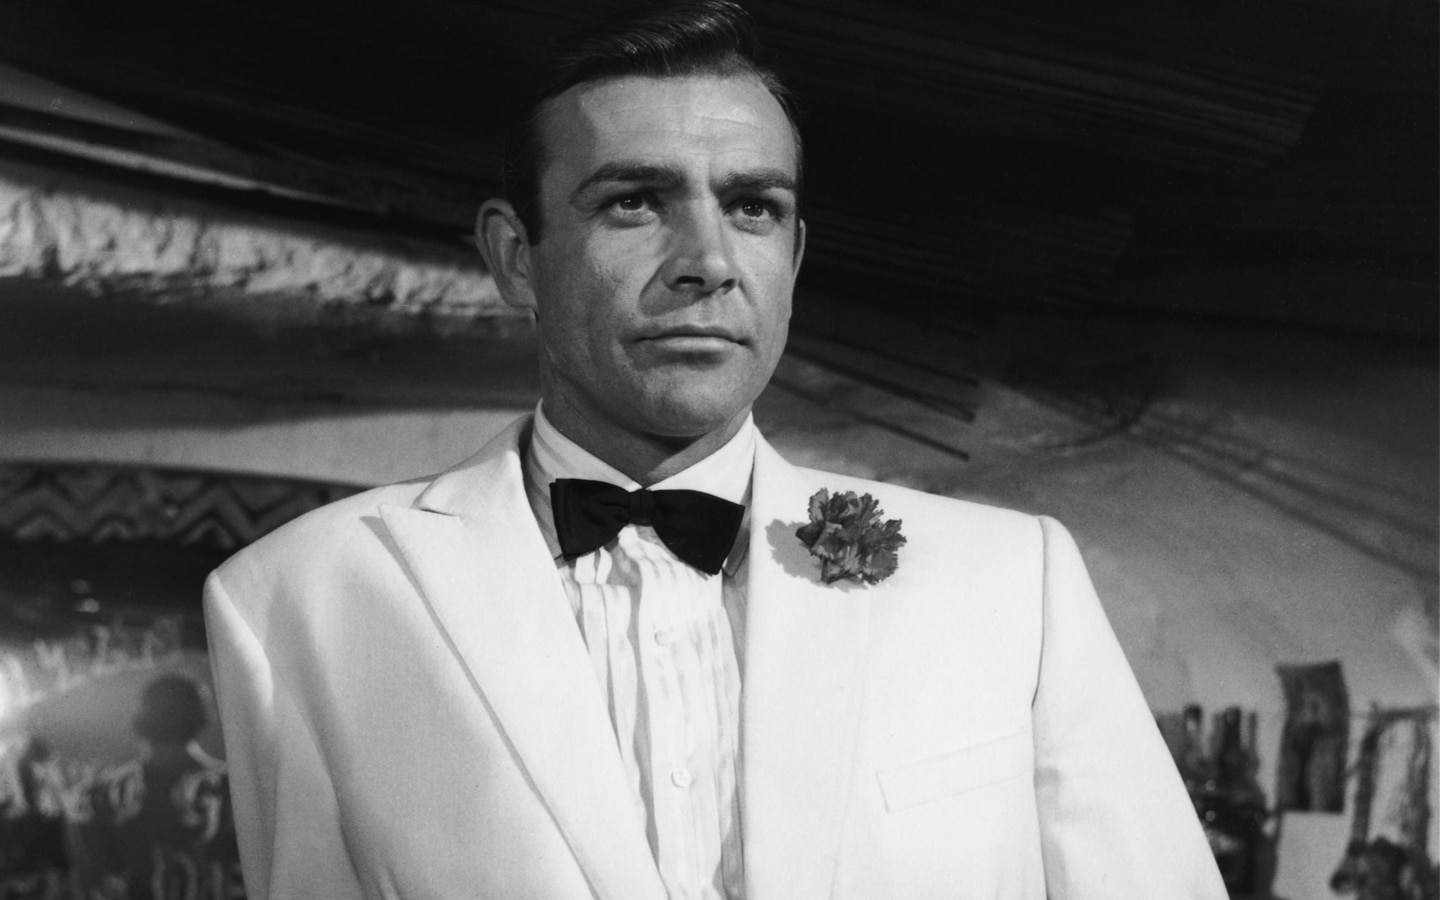 Sean Connery's Most Iconic Roles